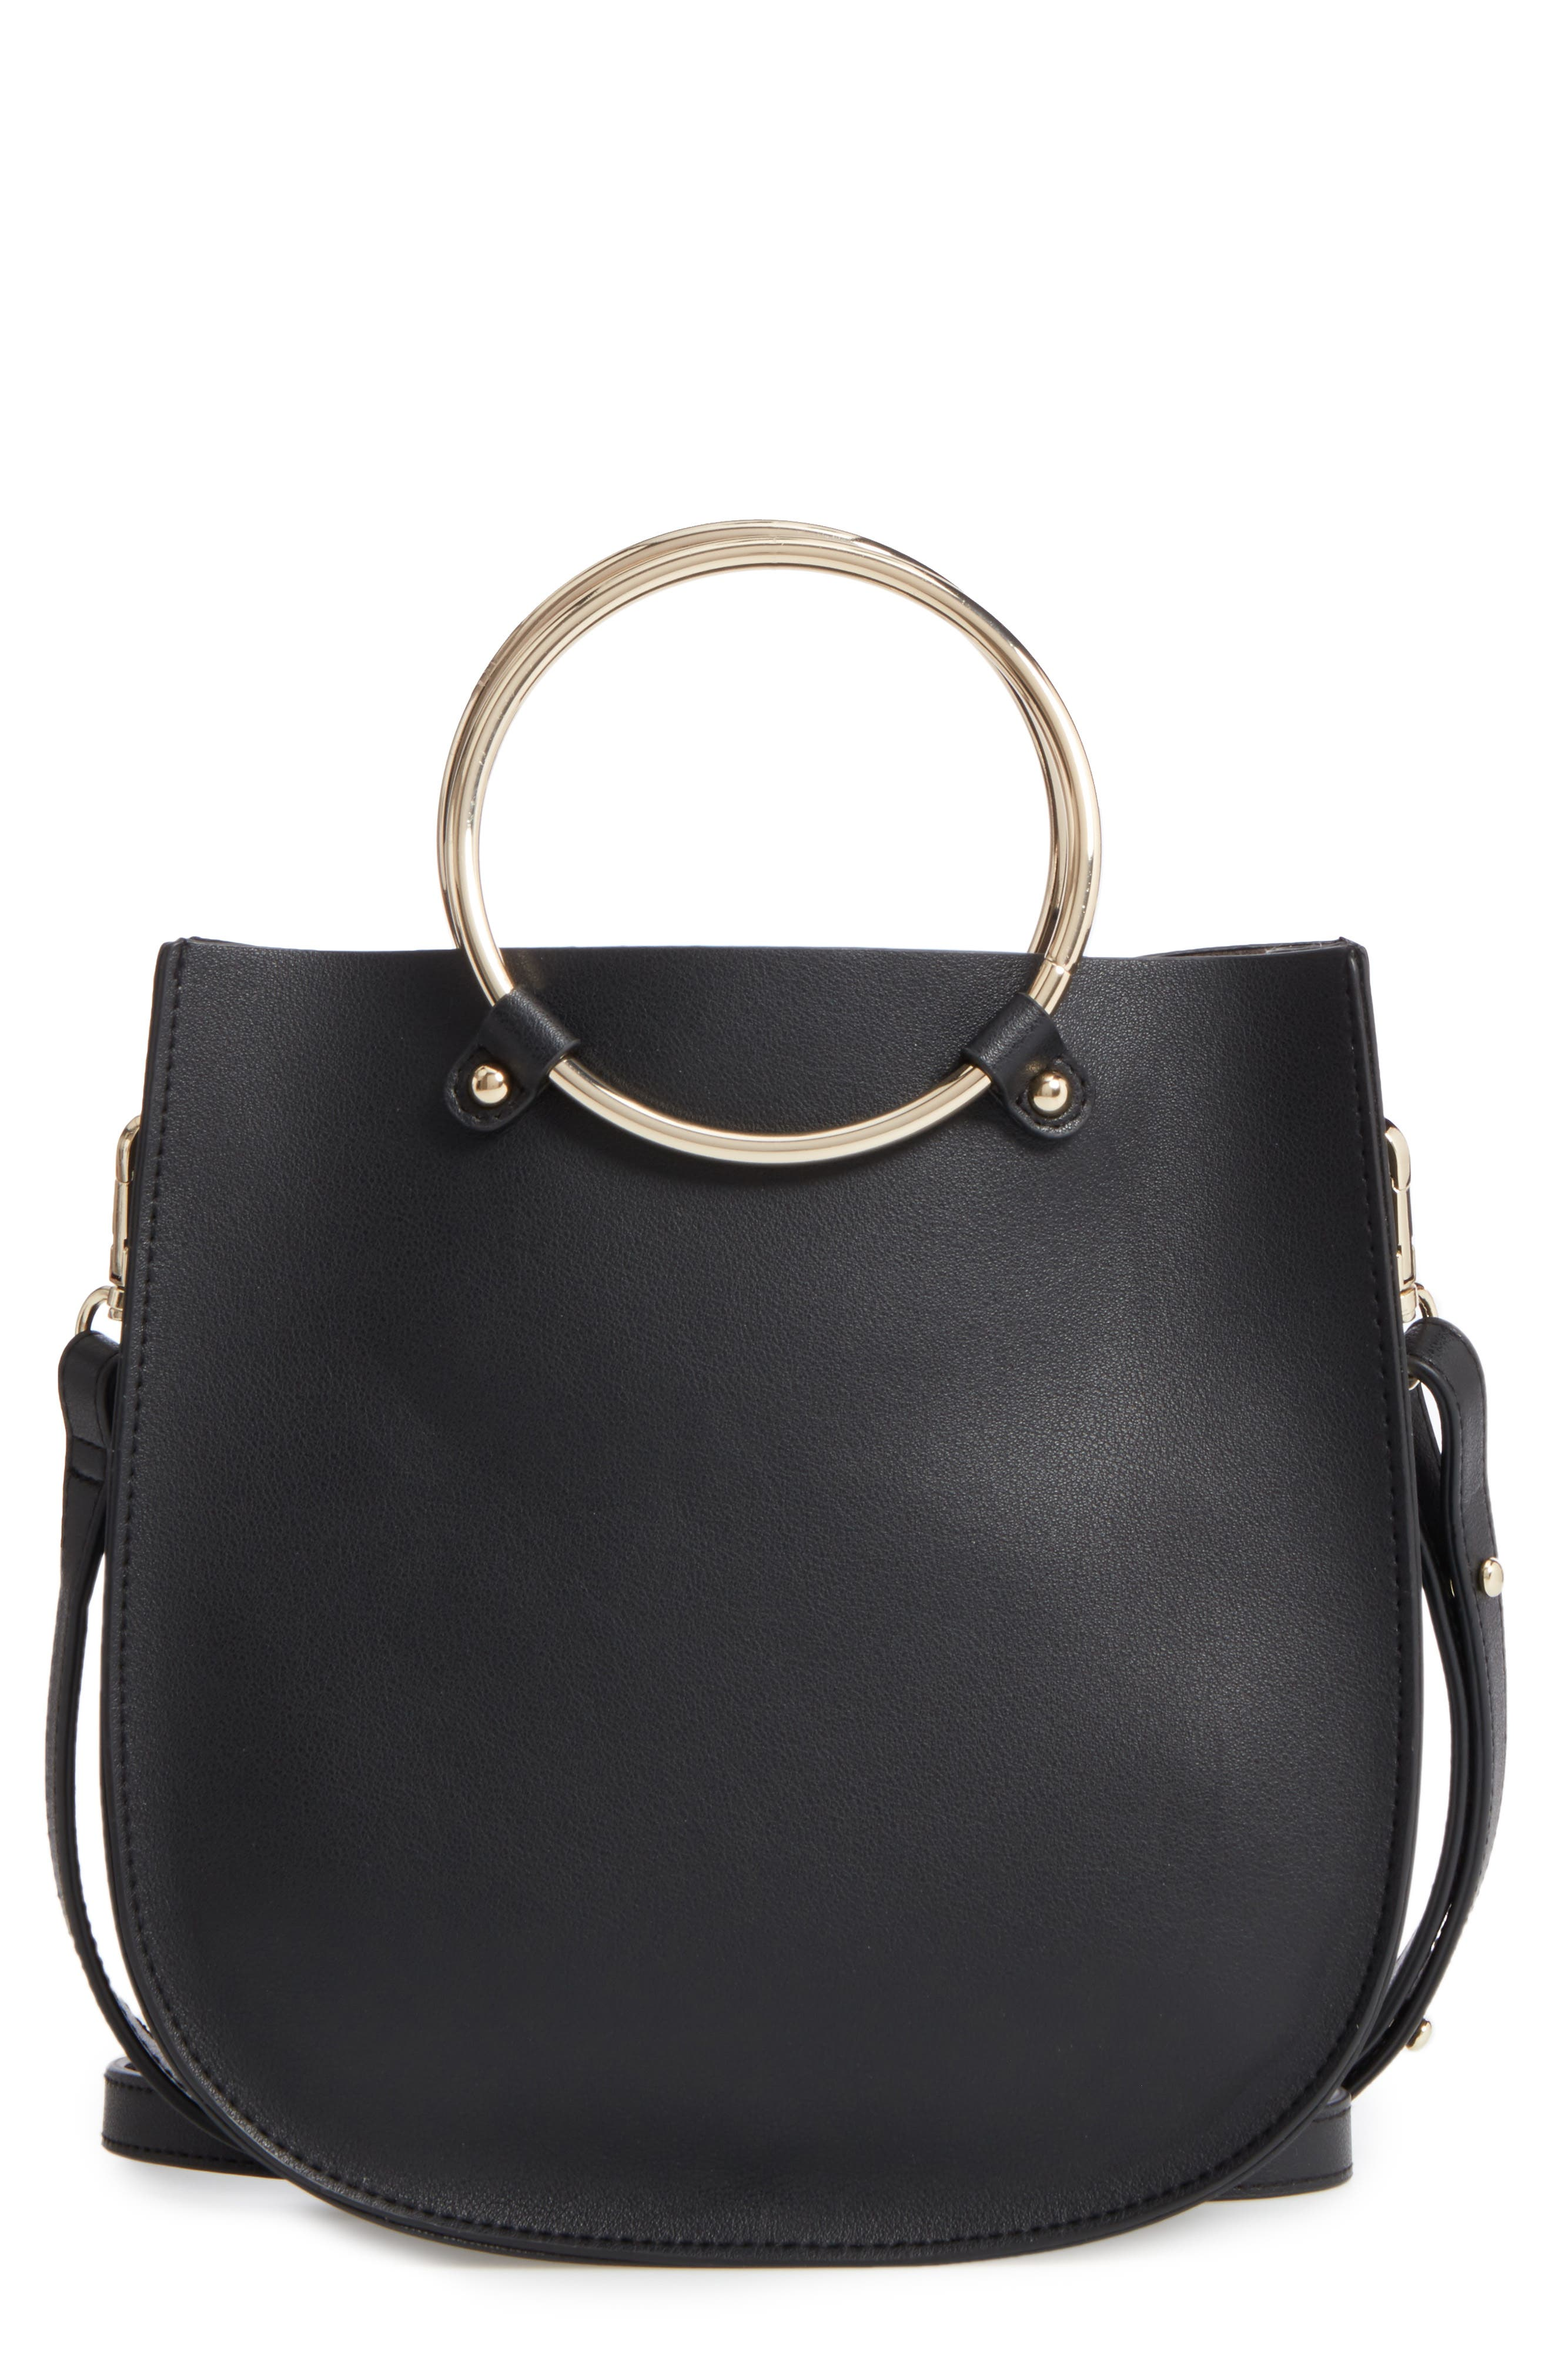 Alternate Image 1 Selected - BP. Metal Ring Crossbody Bag